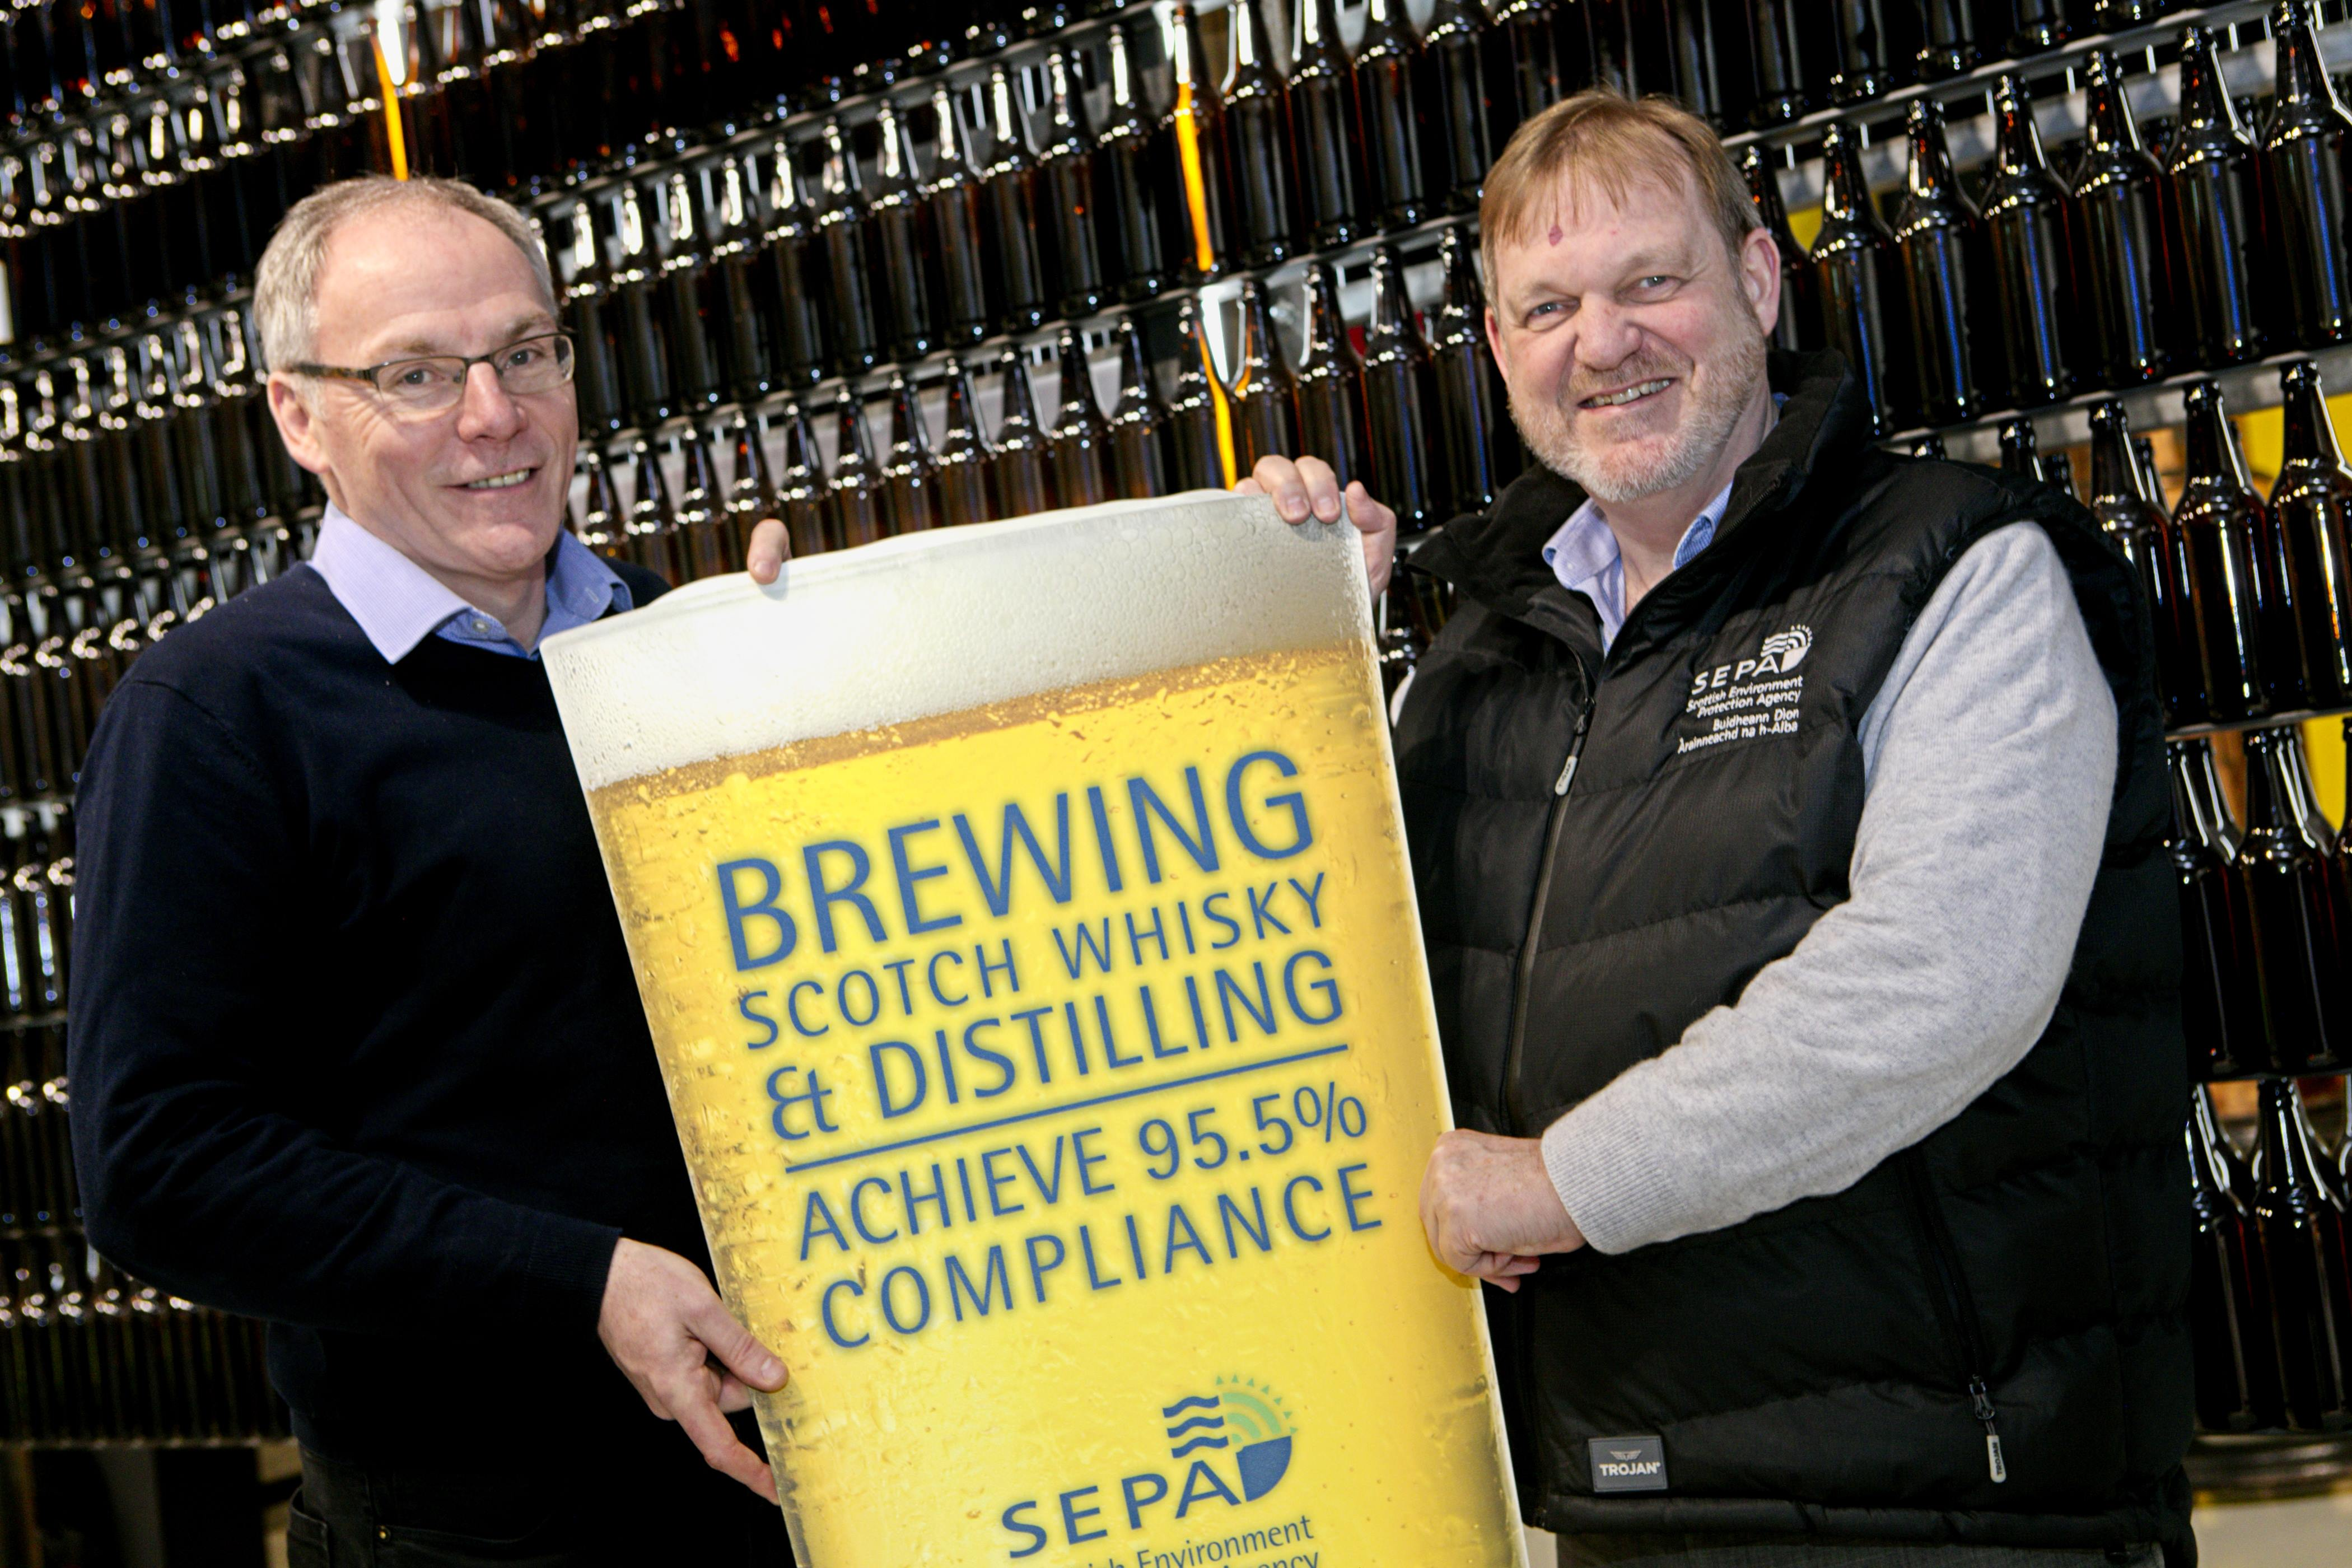 Scottish business environmental compliance over 90% for fourth year in a row in latest SEPA data